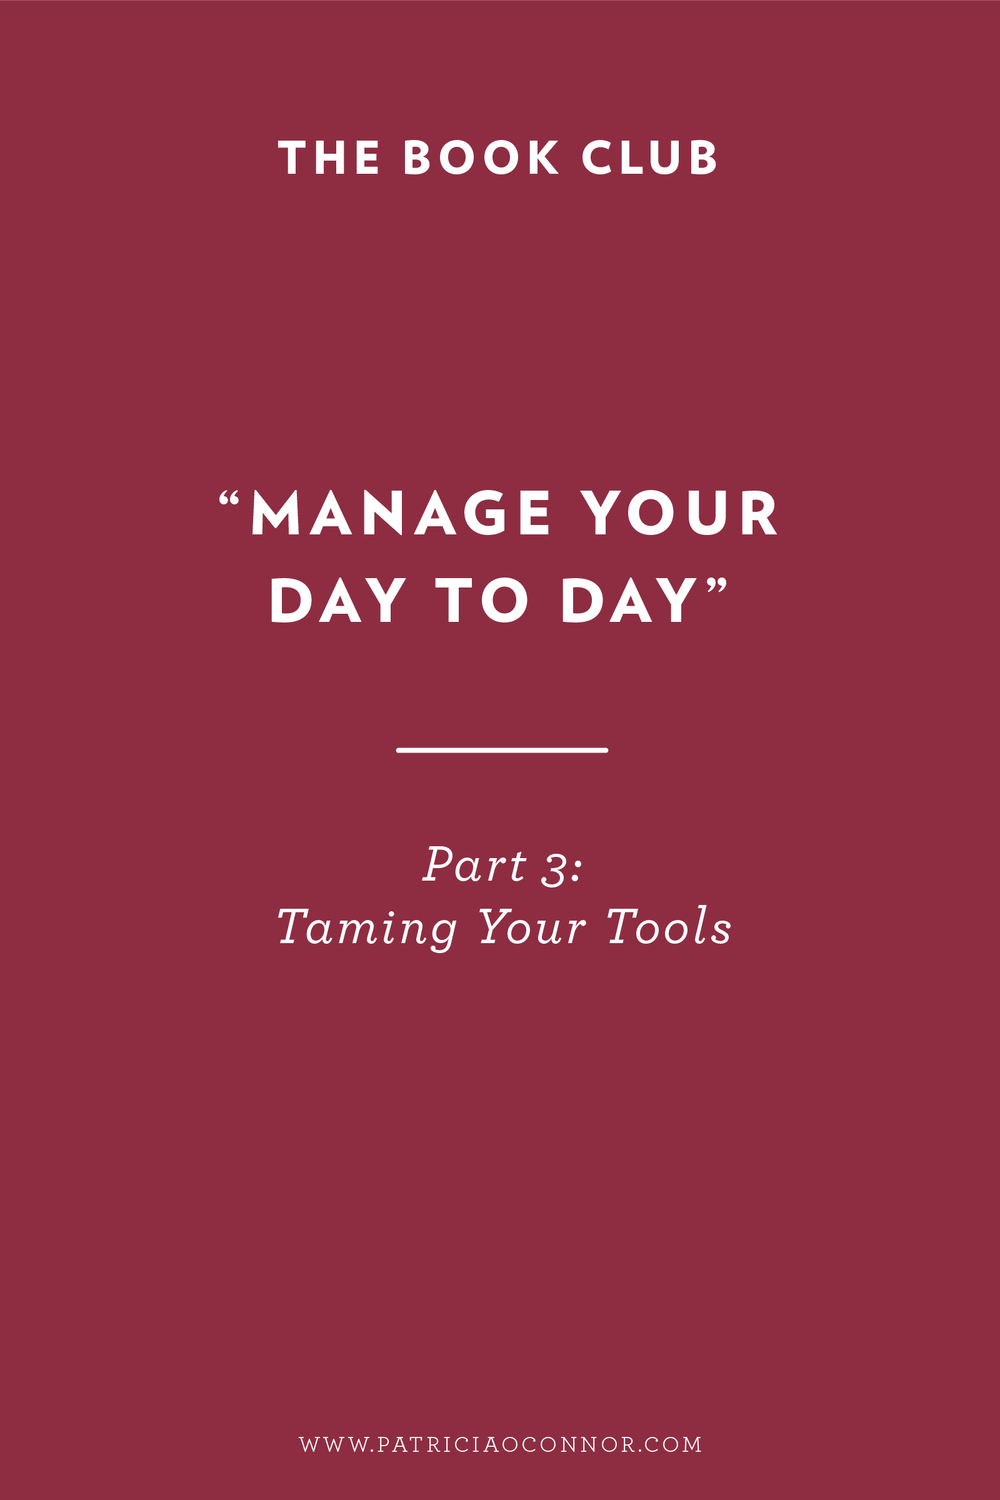 Learn how to tame your tools and be your most productive self!